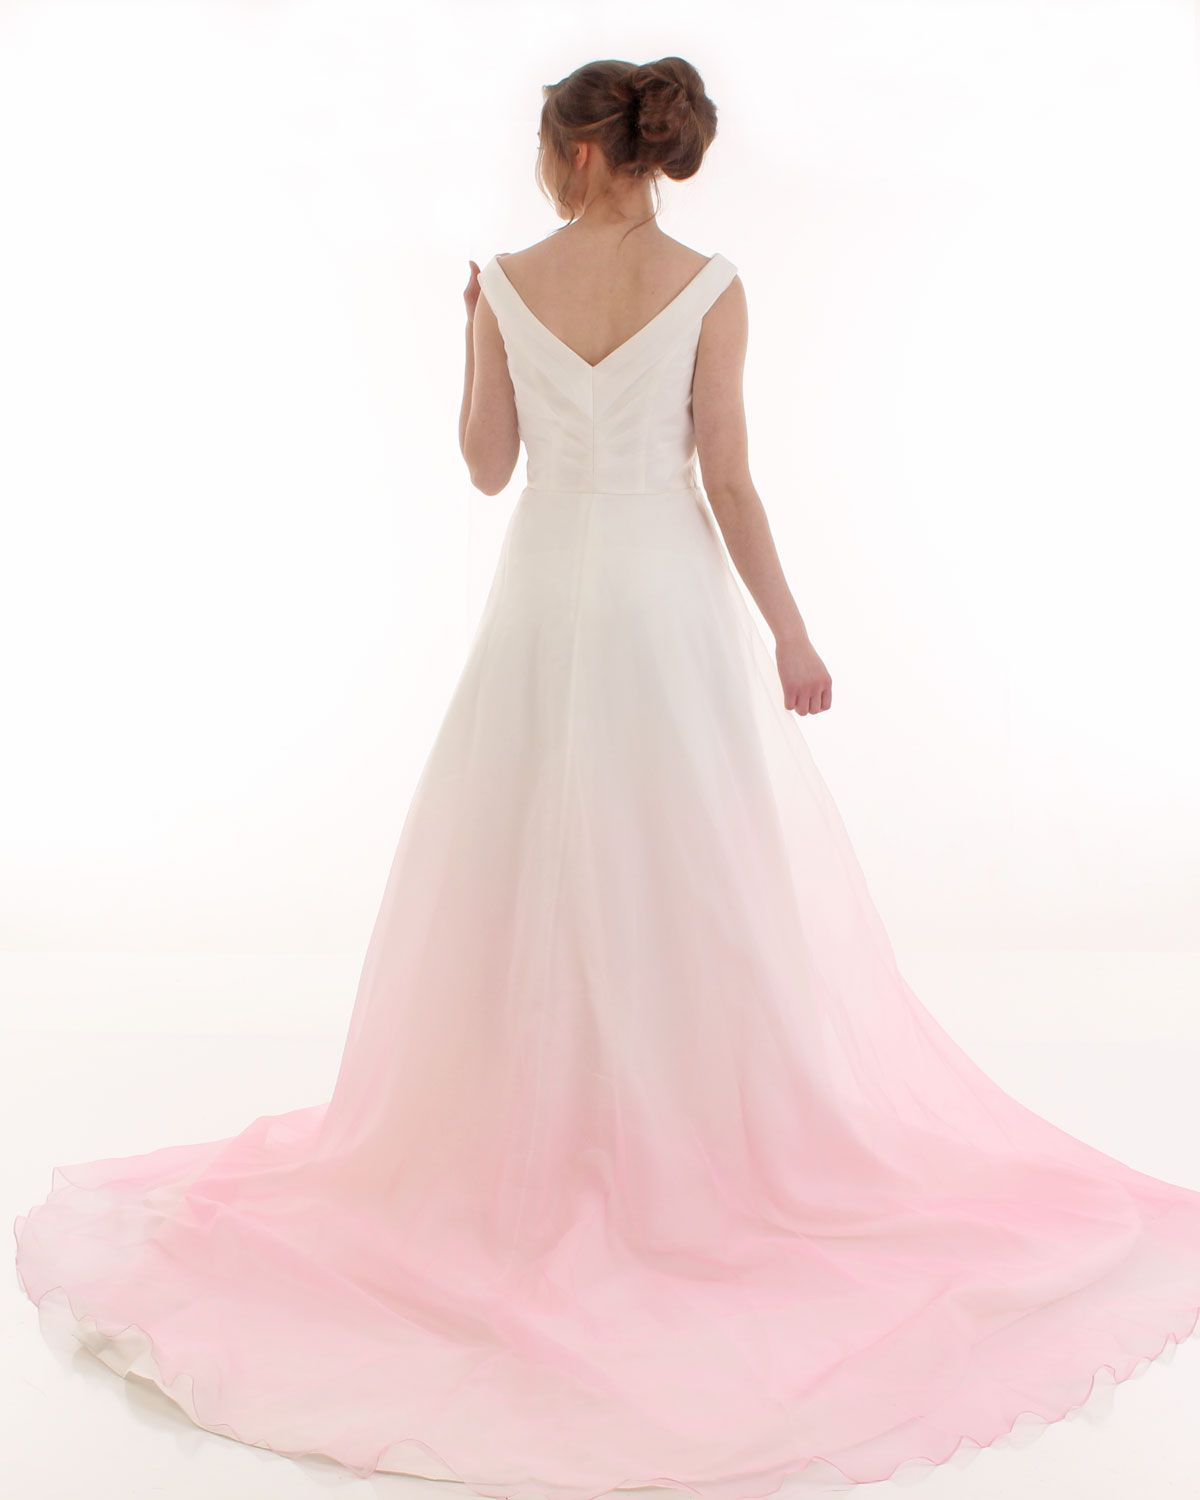 Ombre organza bridal gown from Kaela Bridal off-the-shoulder wedding dress